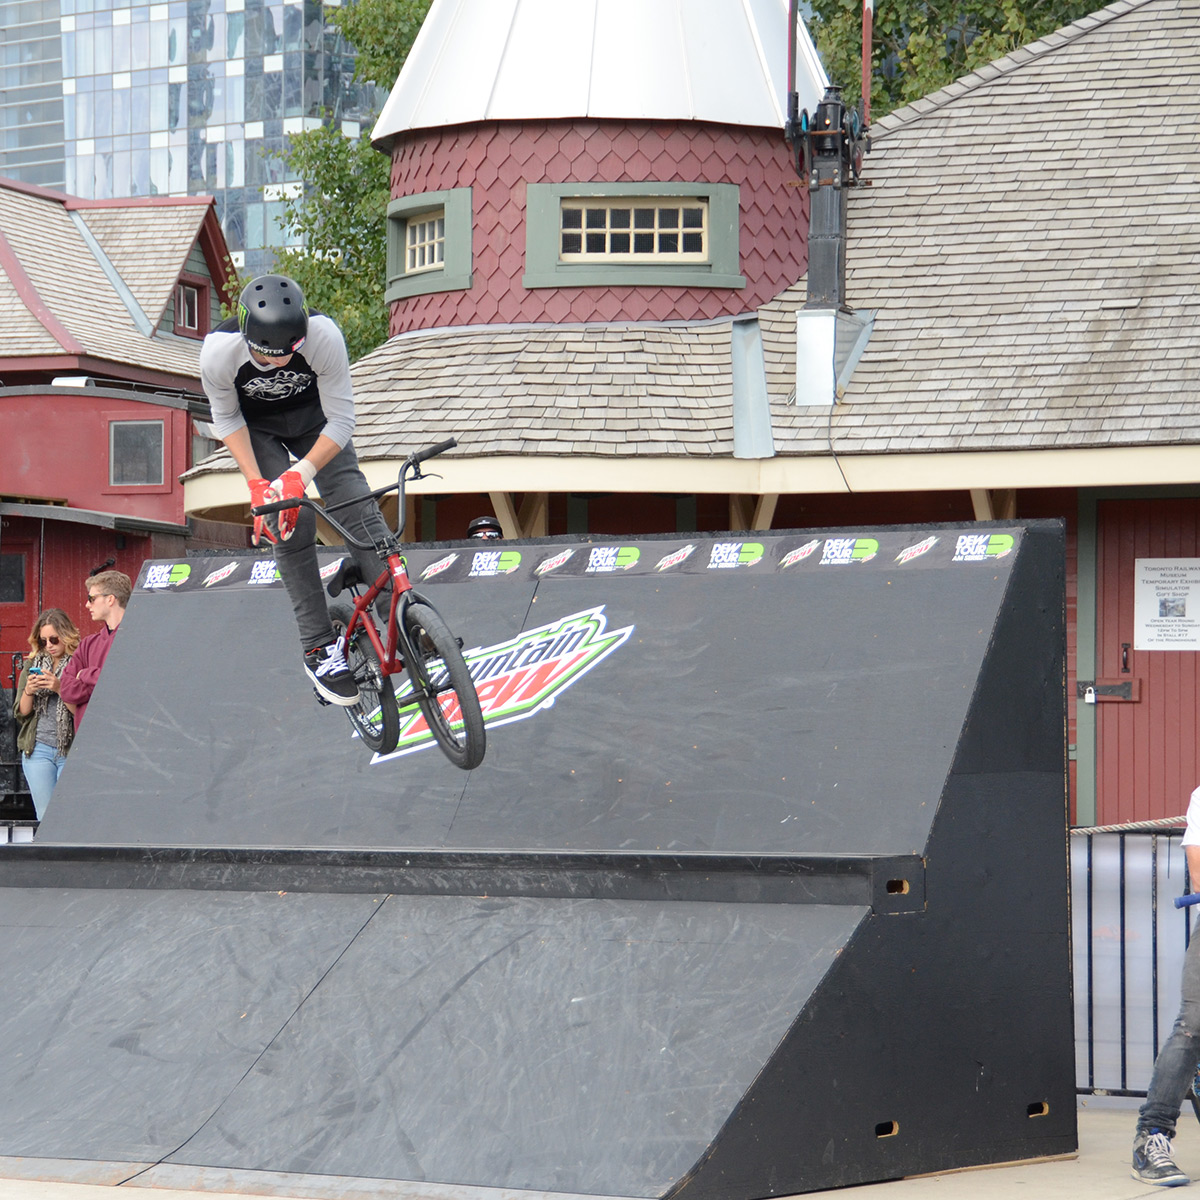 Wall Ride to Bar at Dew Tour Am Series in Toronto